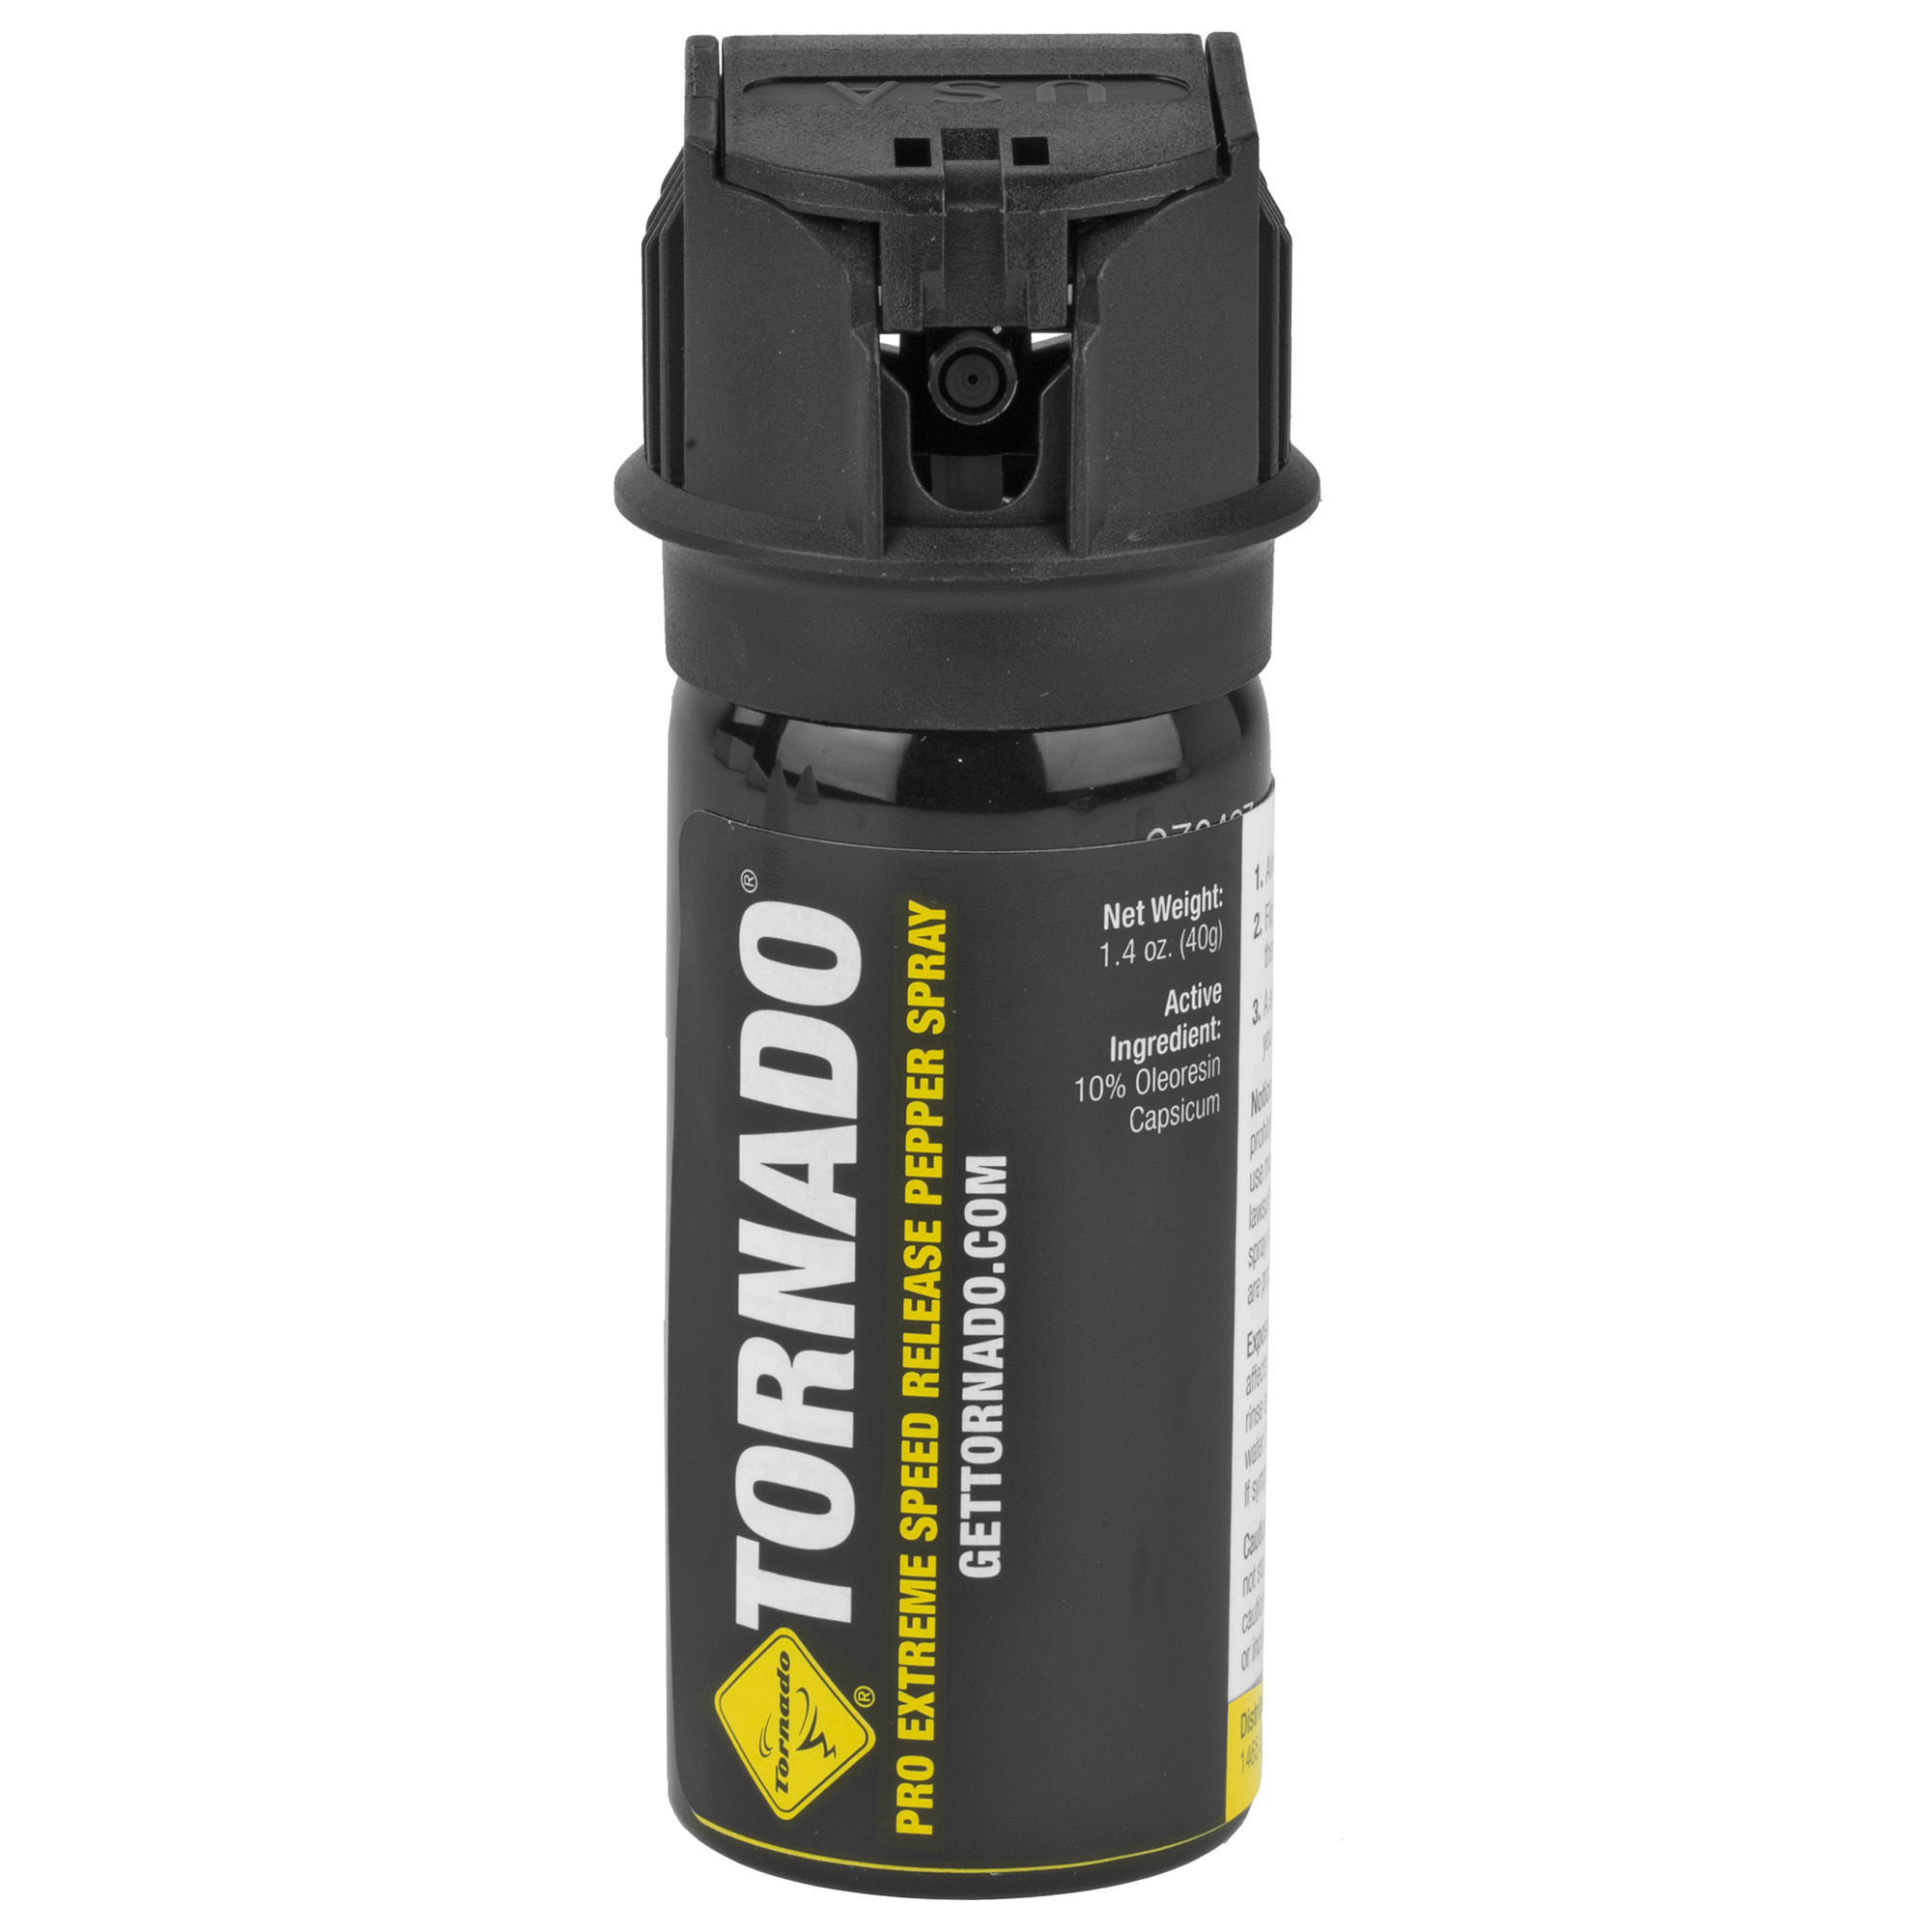 Tornado offers a full line of pepper spray products for individuals or law enforcement professionals looking to add pepper spray to their overall personal safety plan.